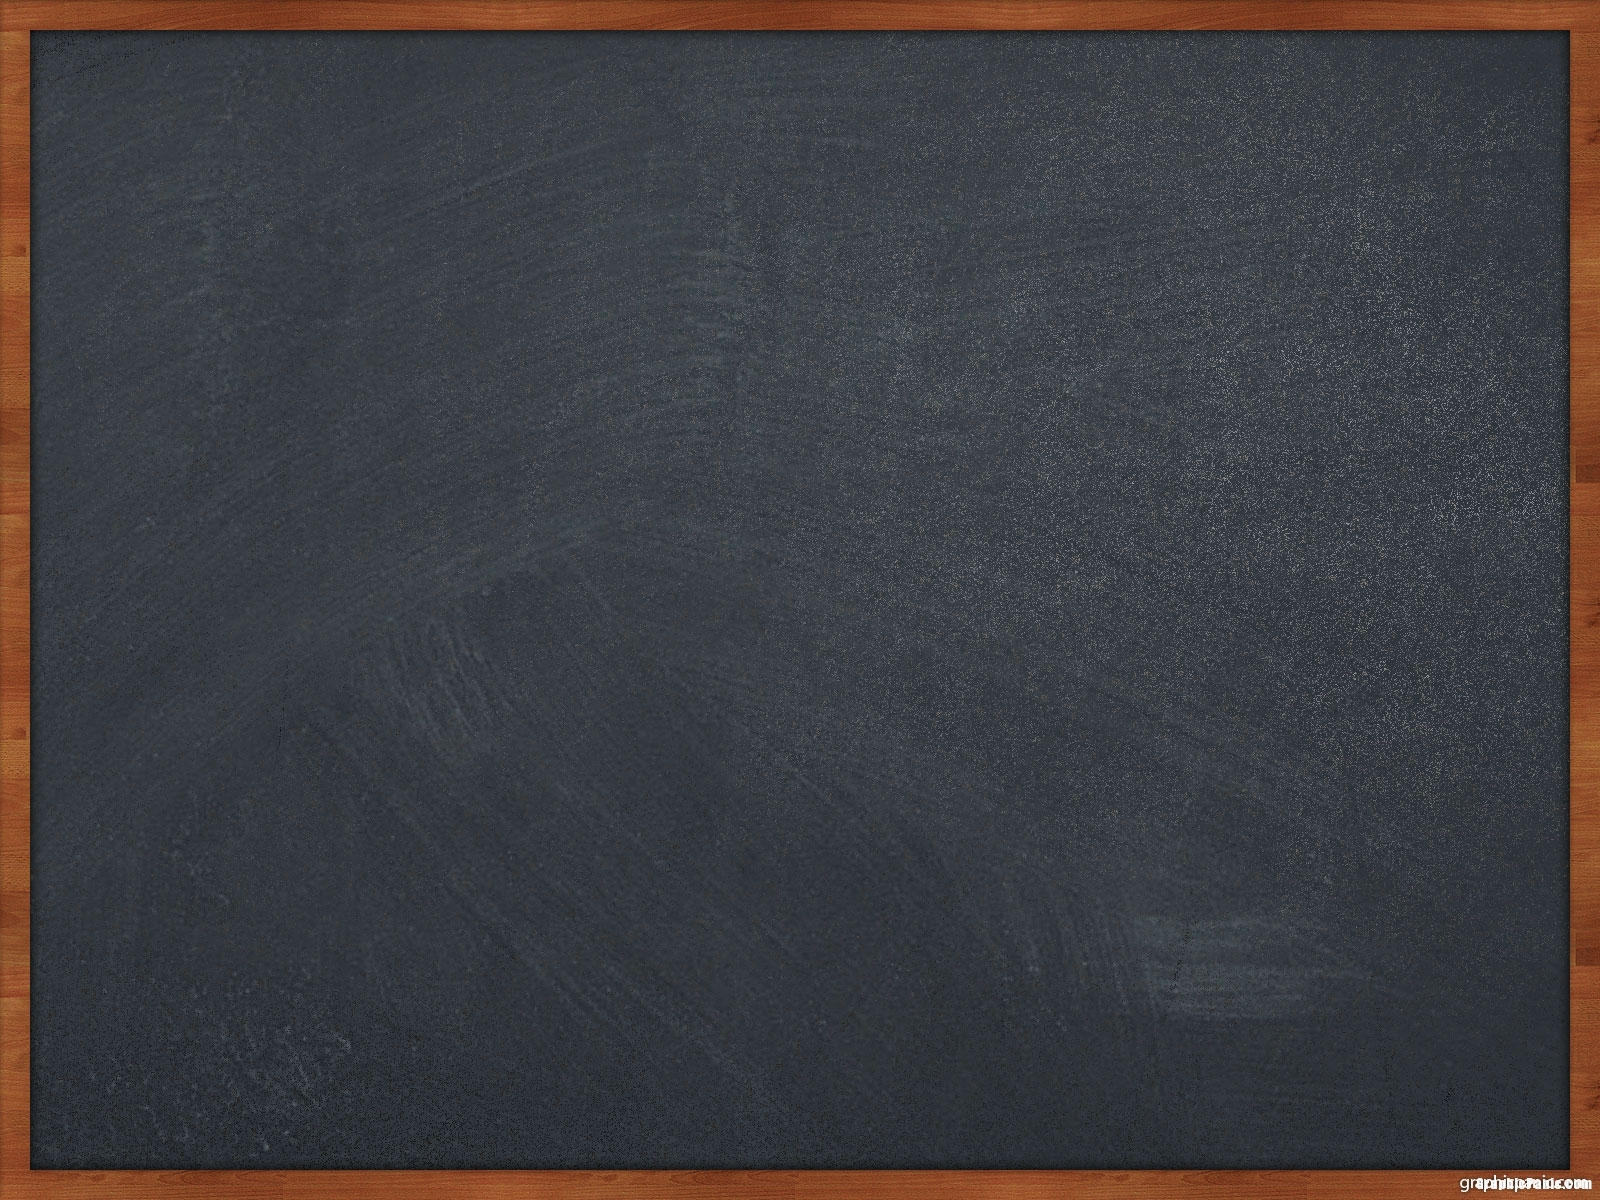 Black Chalkboard Background With Frame